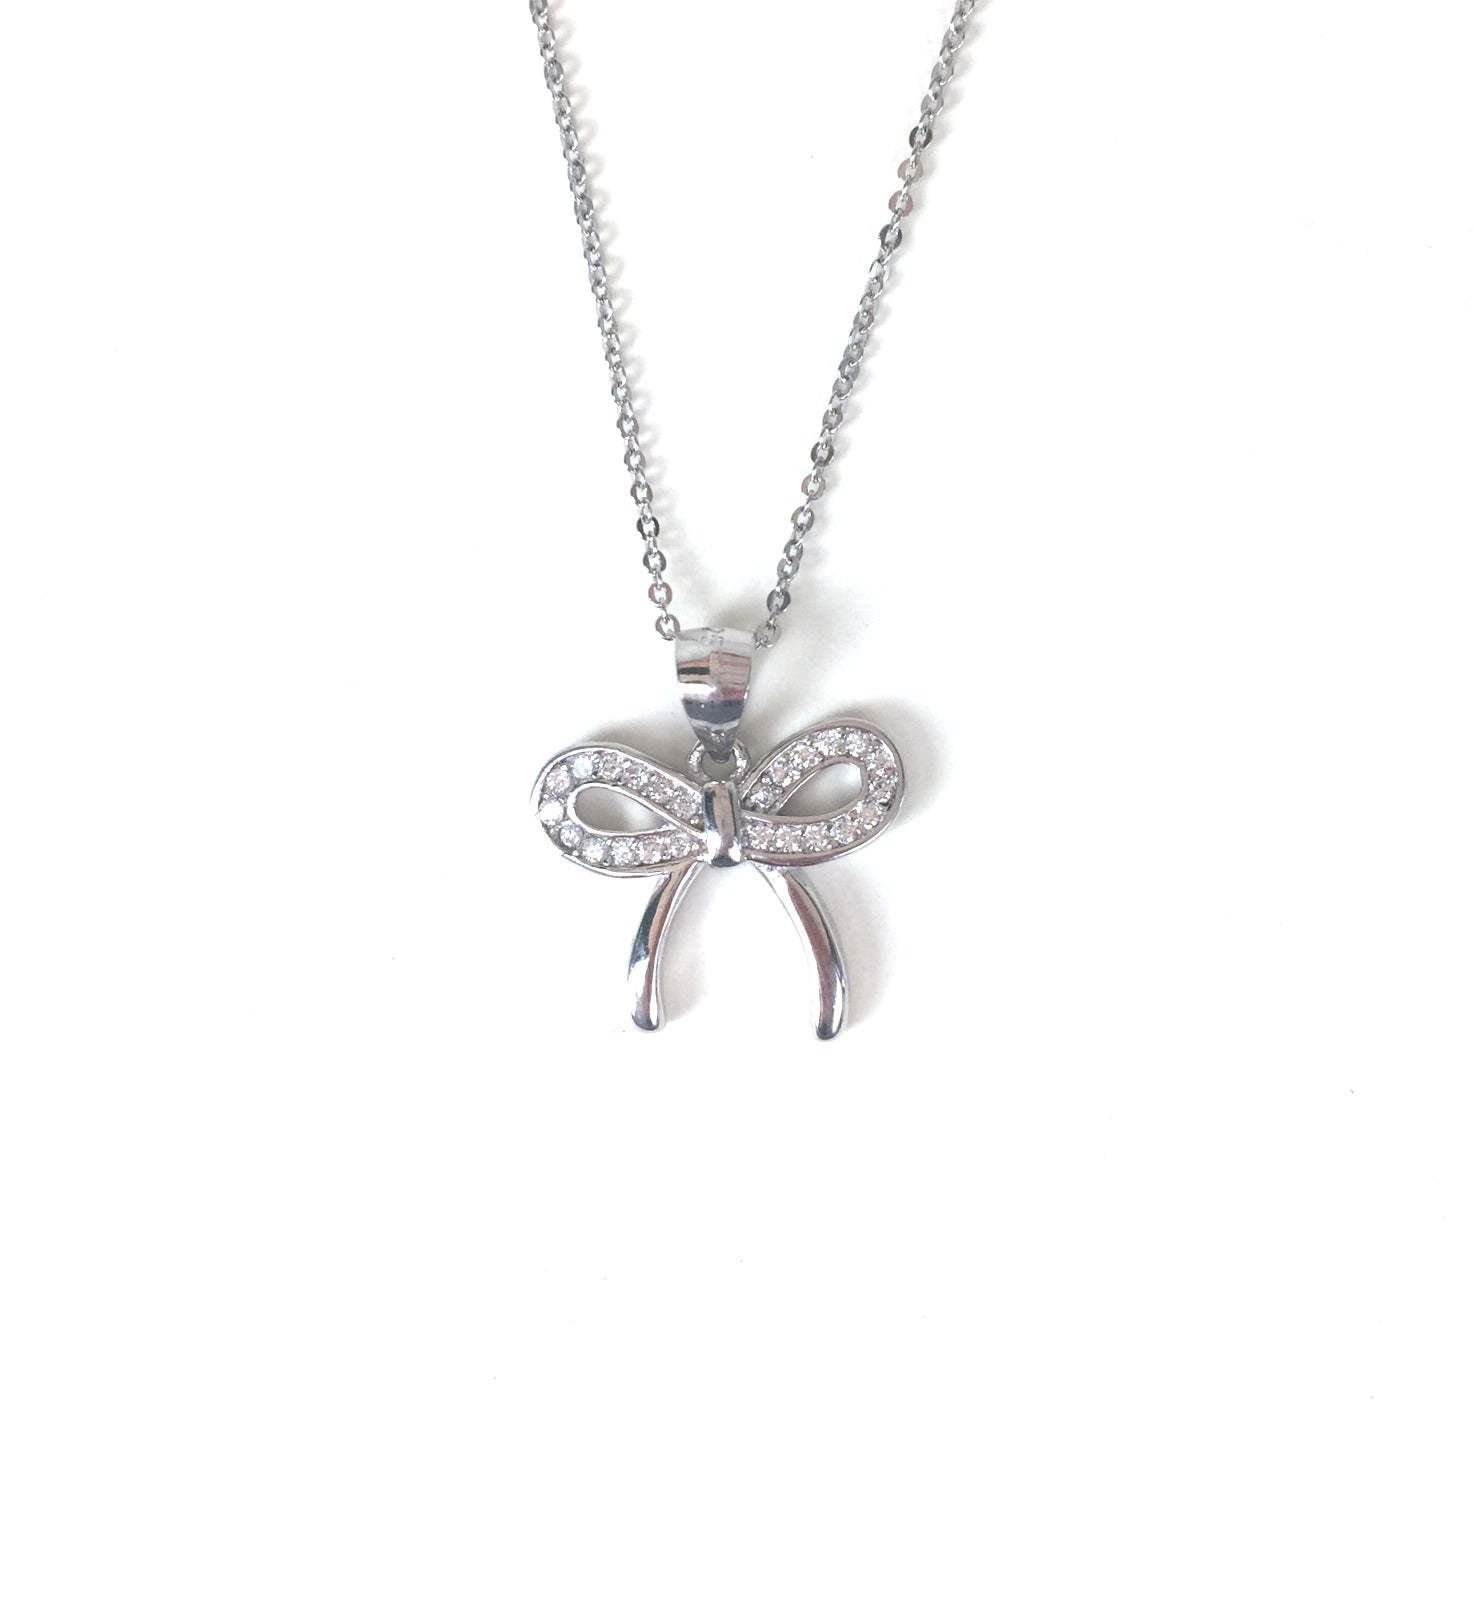 SPARKLING BOW PAVE CZ STERLING SILVER NECKLACE